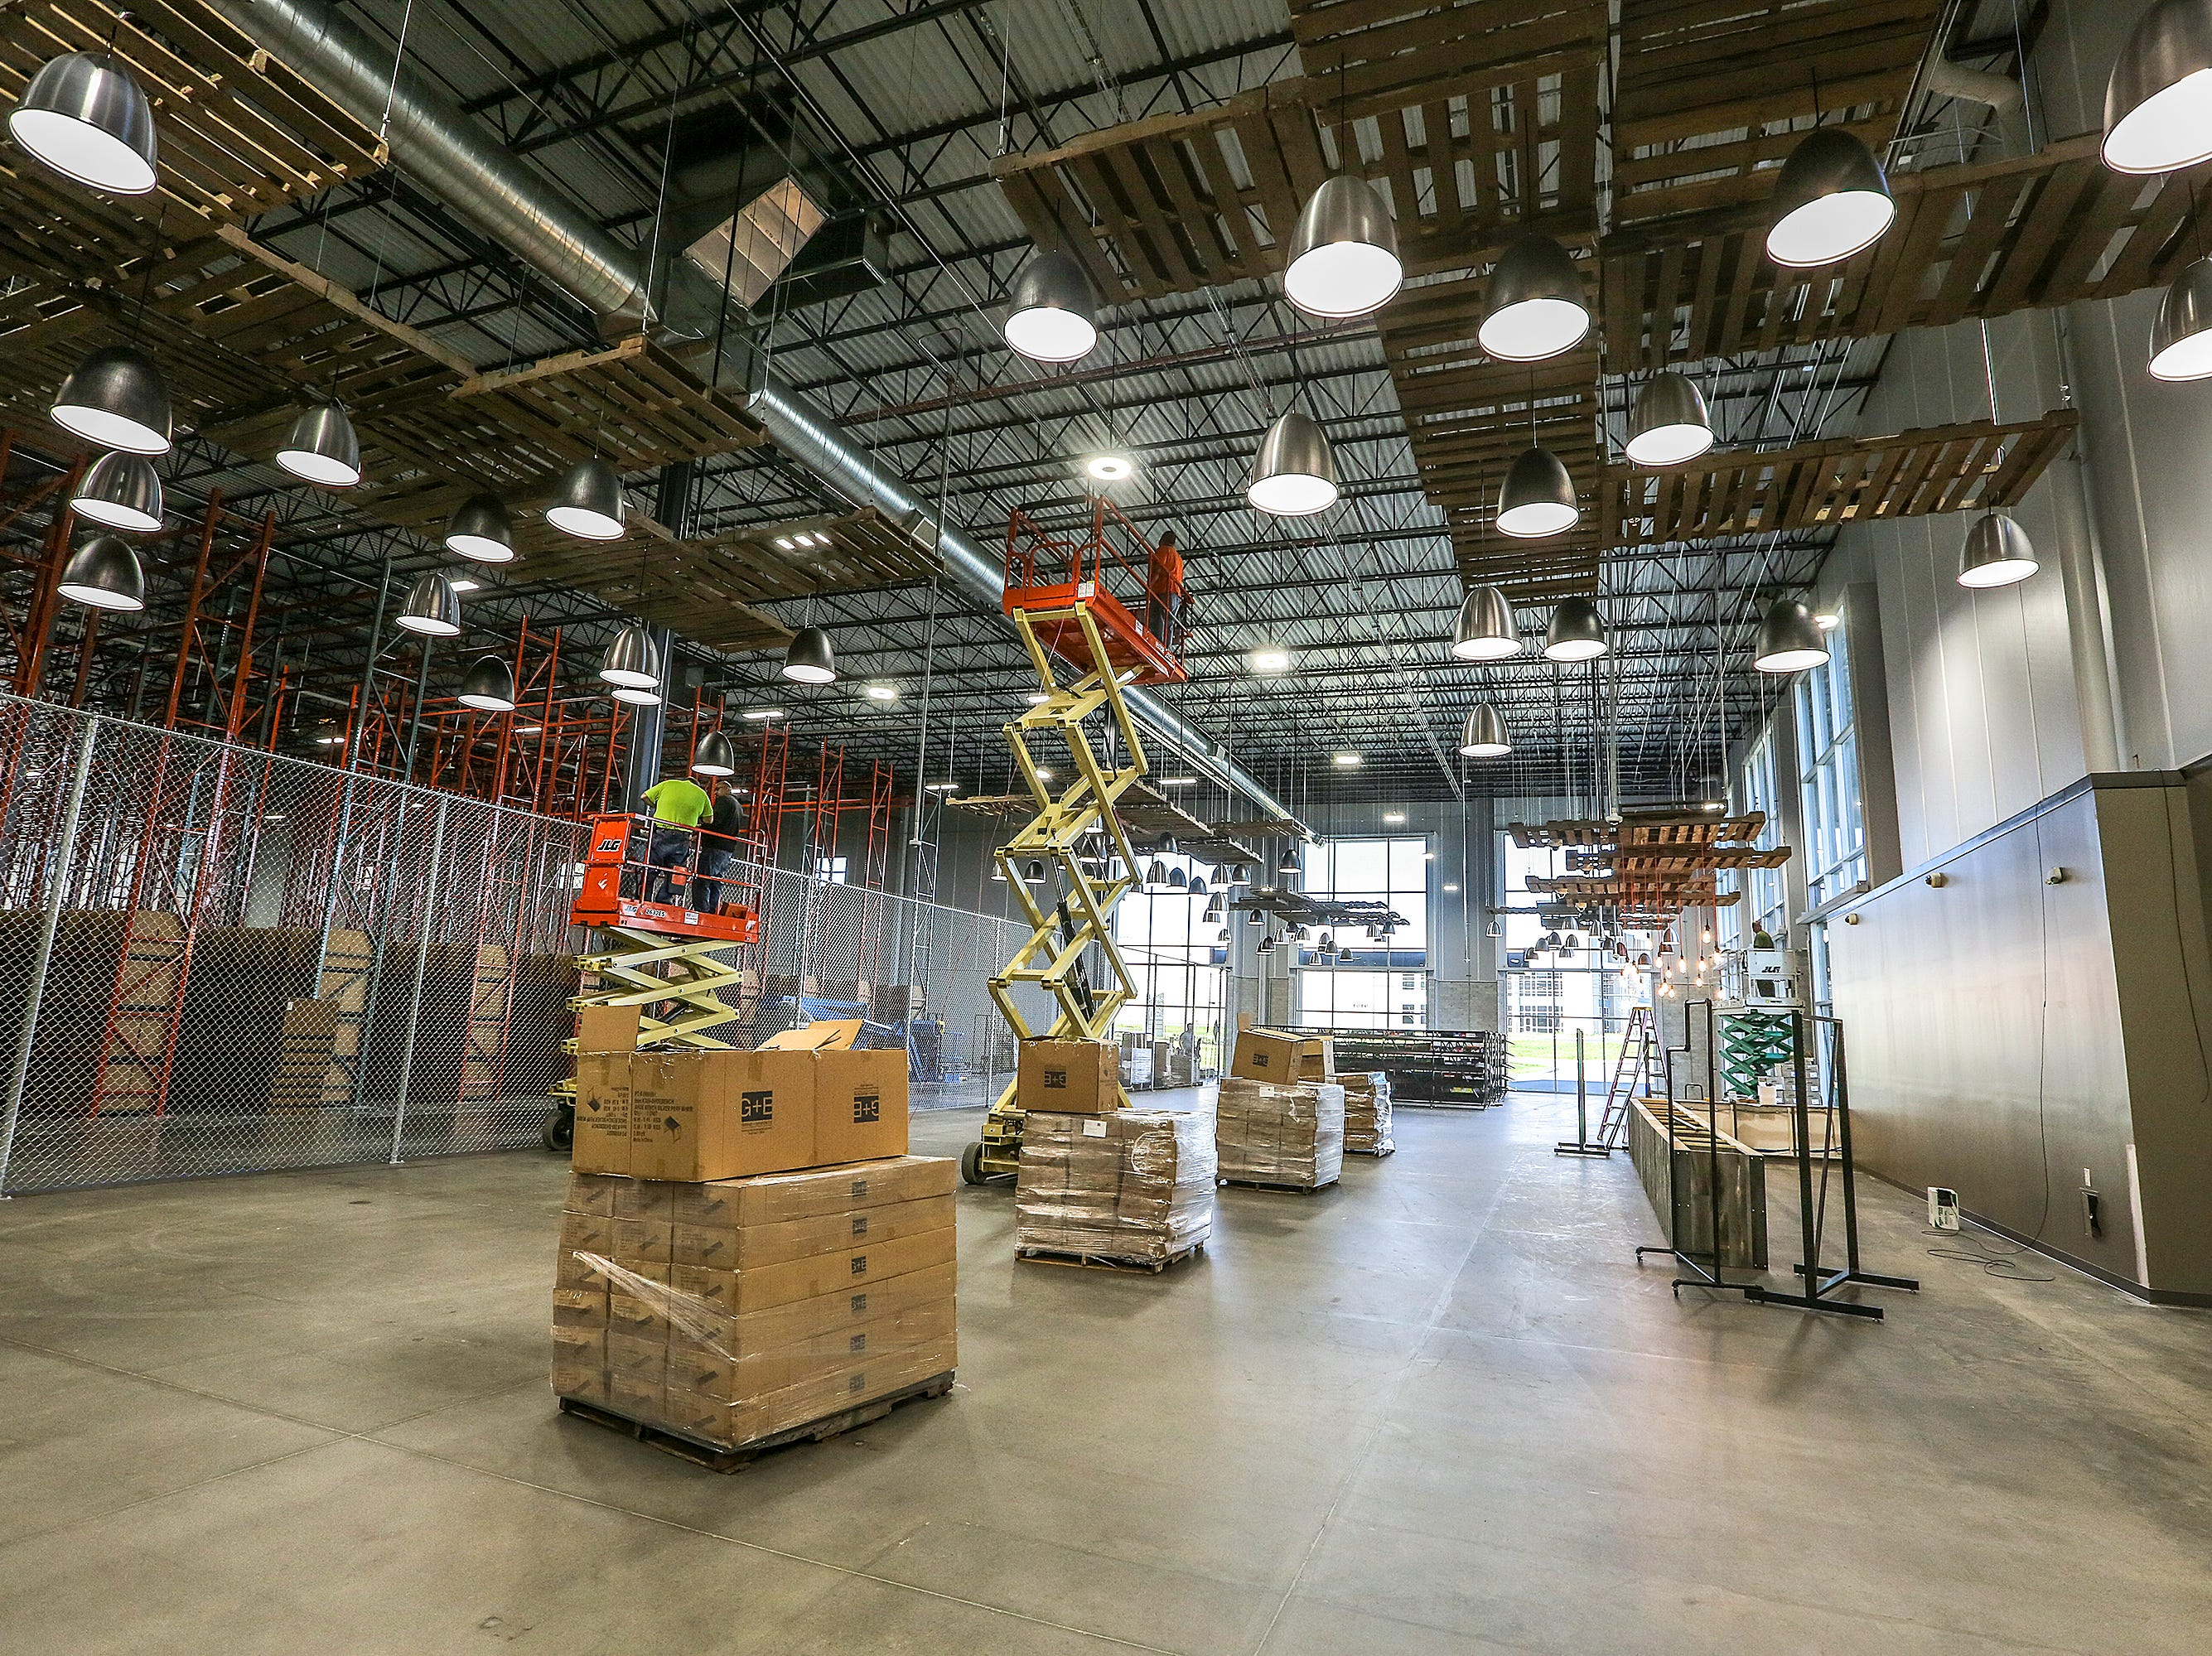 Workers are preparing the new Zappos facility on Minors Lane. 